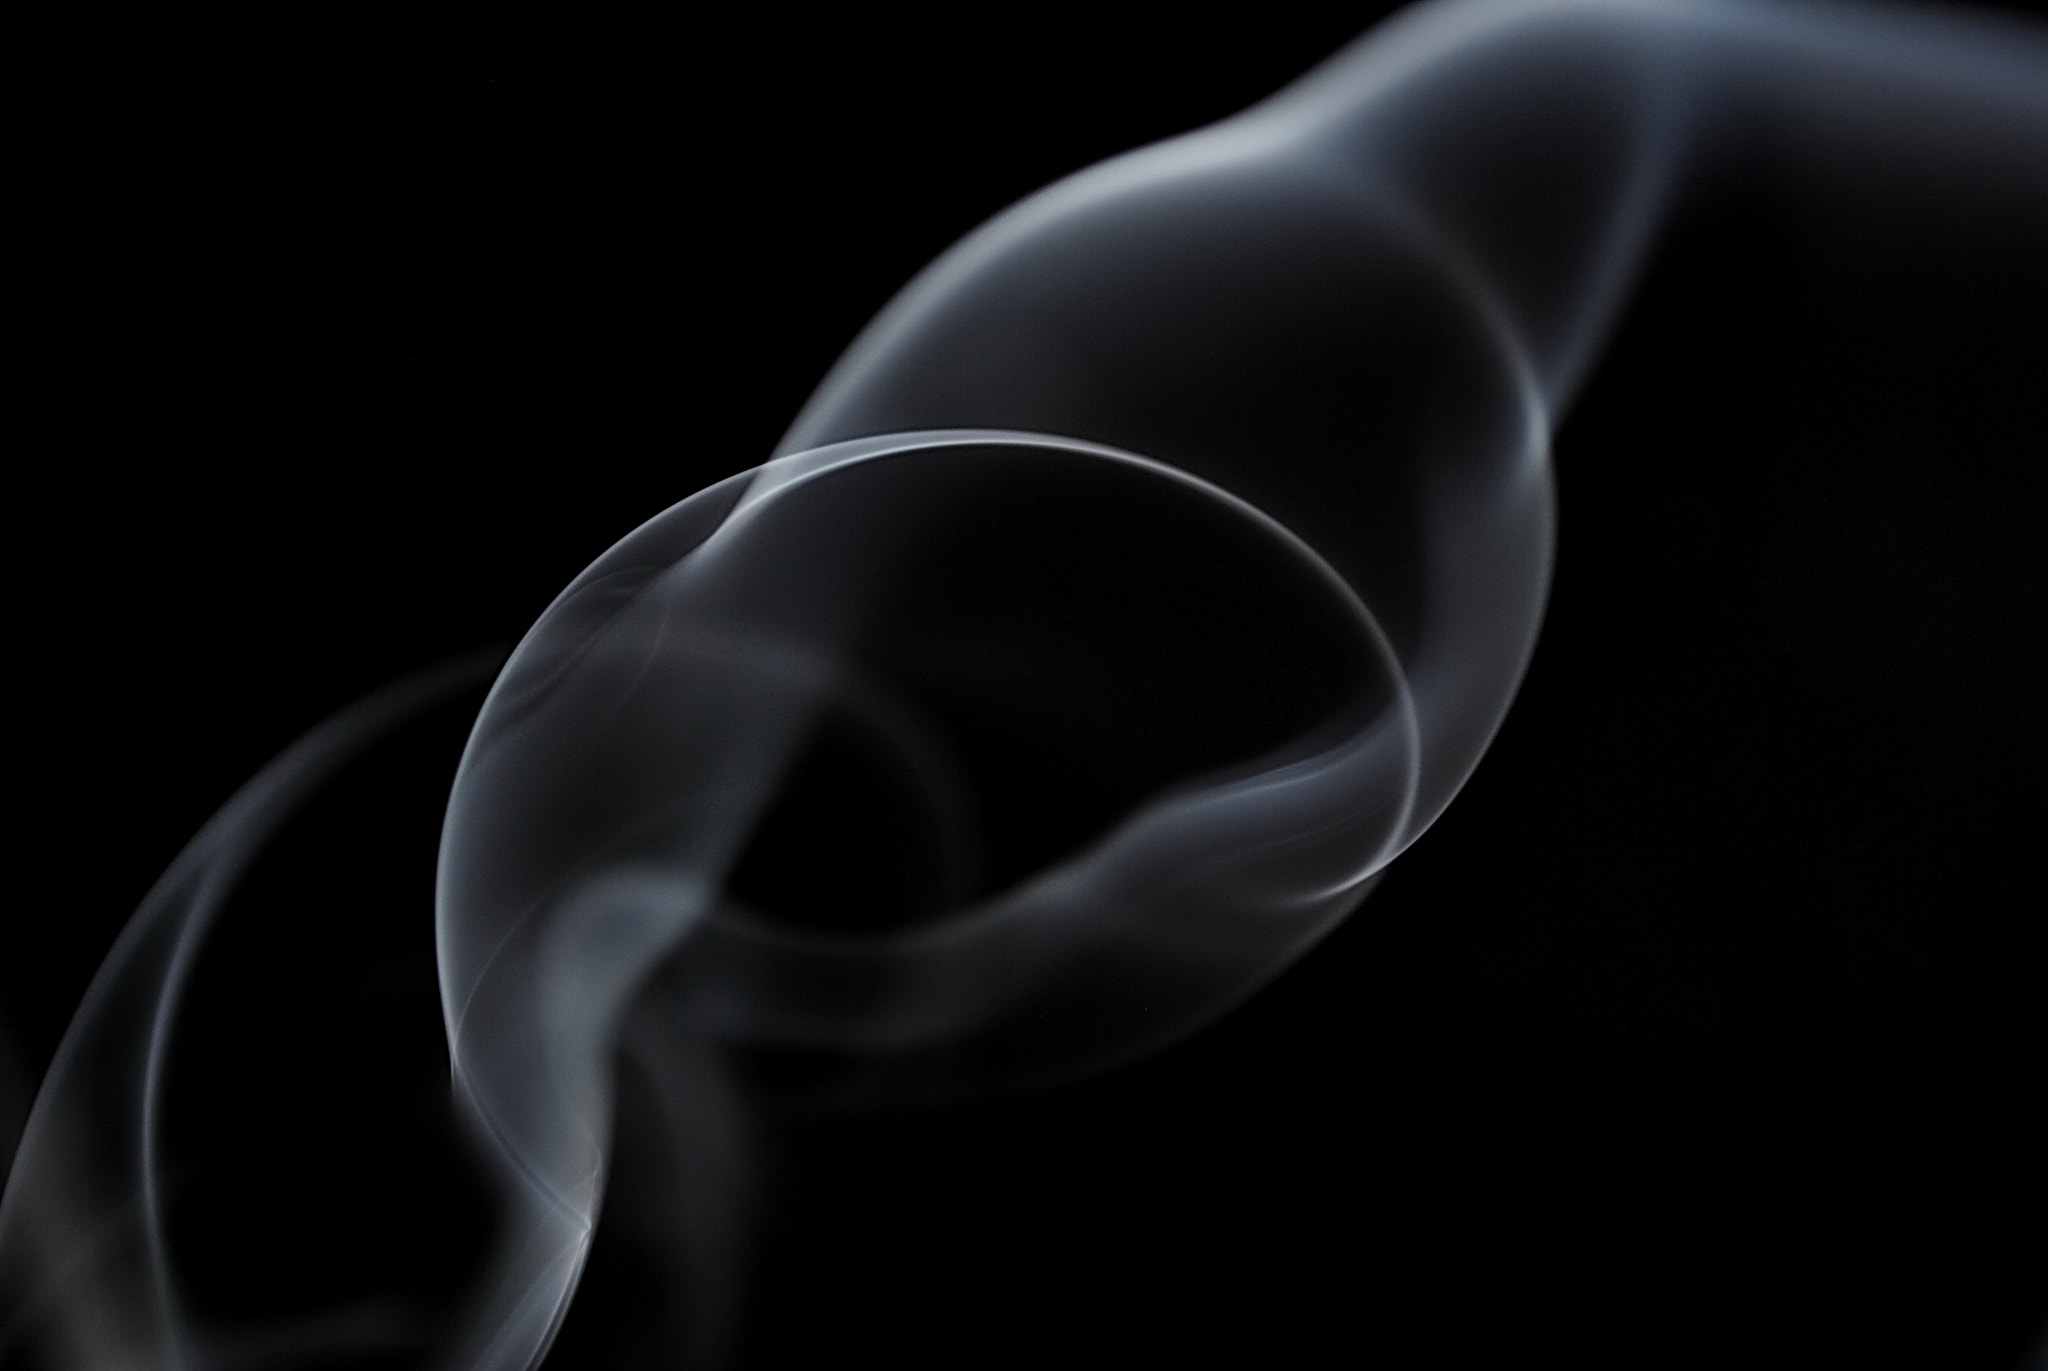 Photograph smoke by edit kis on 500px